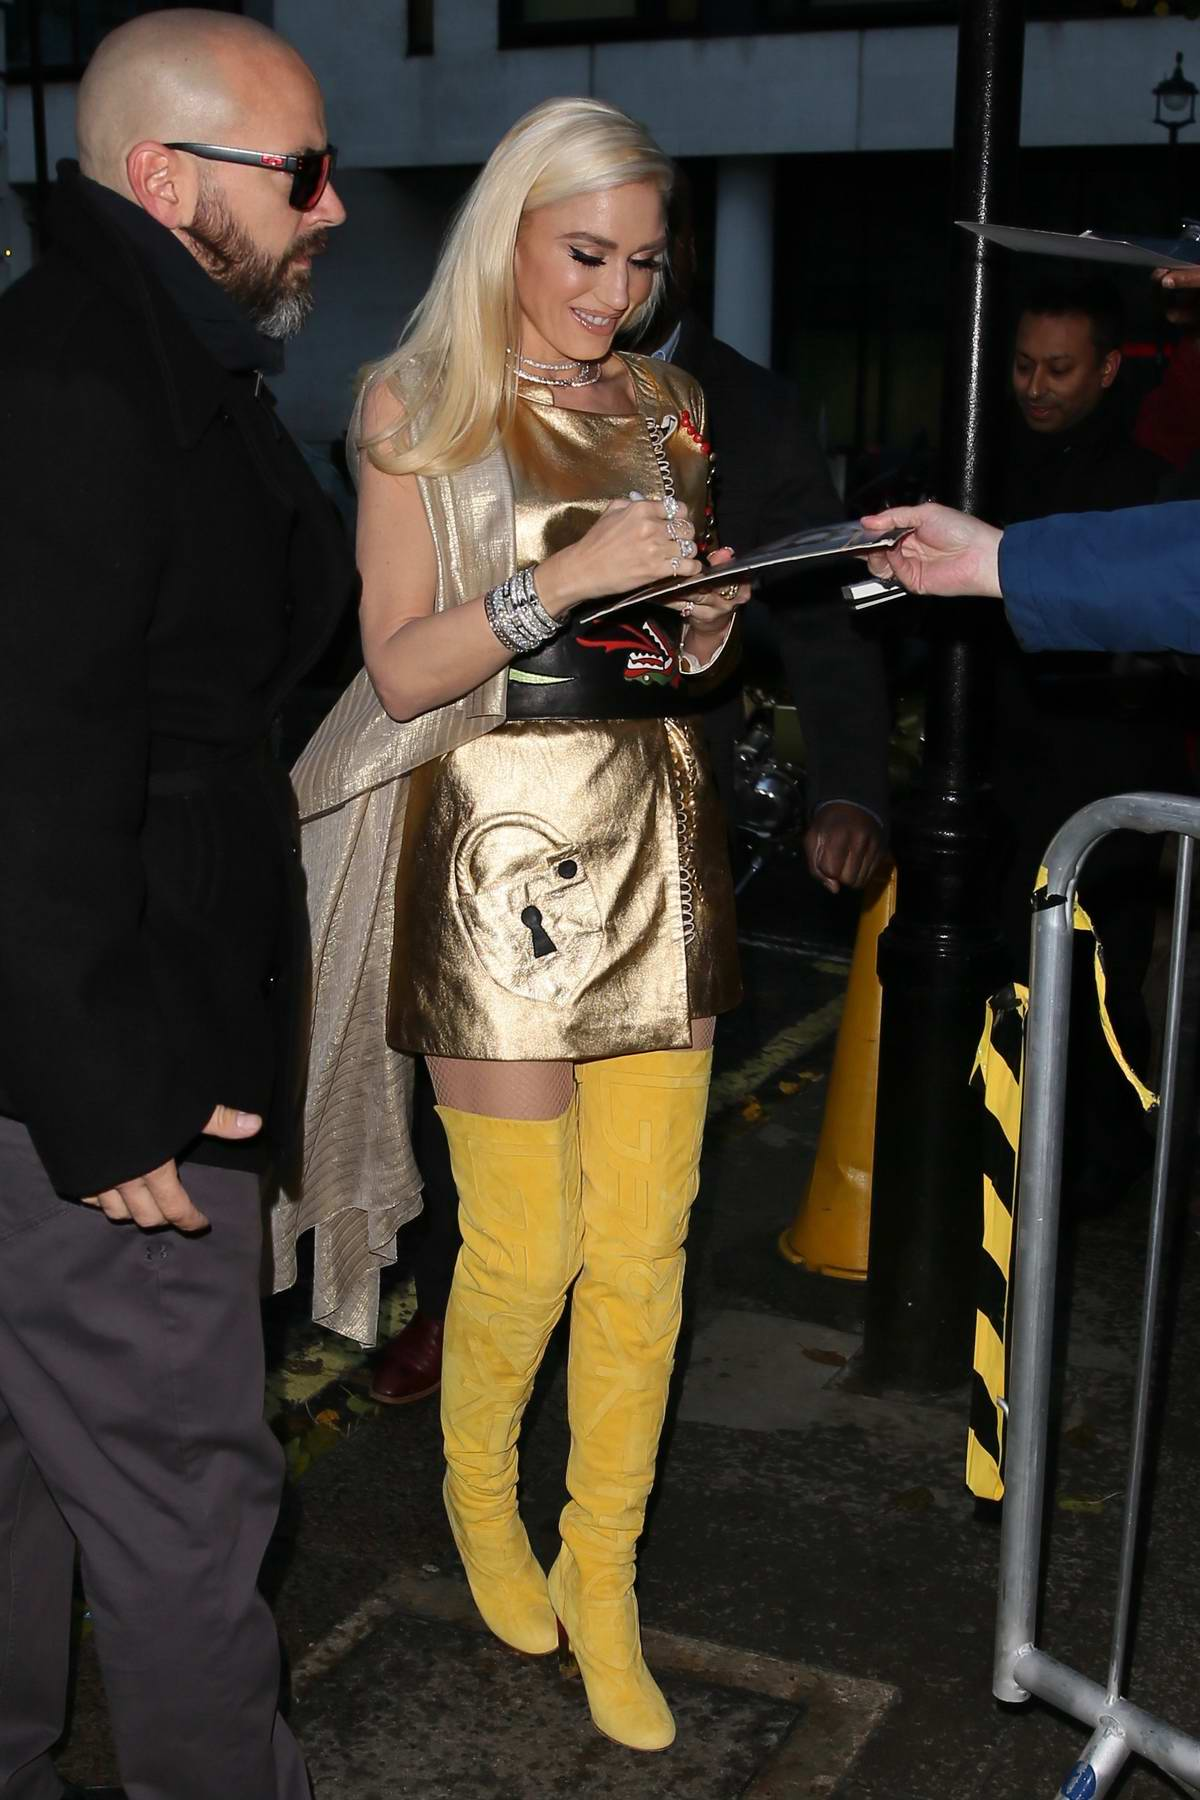 Gwen Stefani in a golden dress and high yellow boots arriving at BBC Radio 2 in London